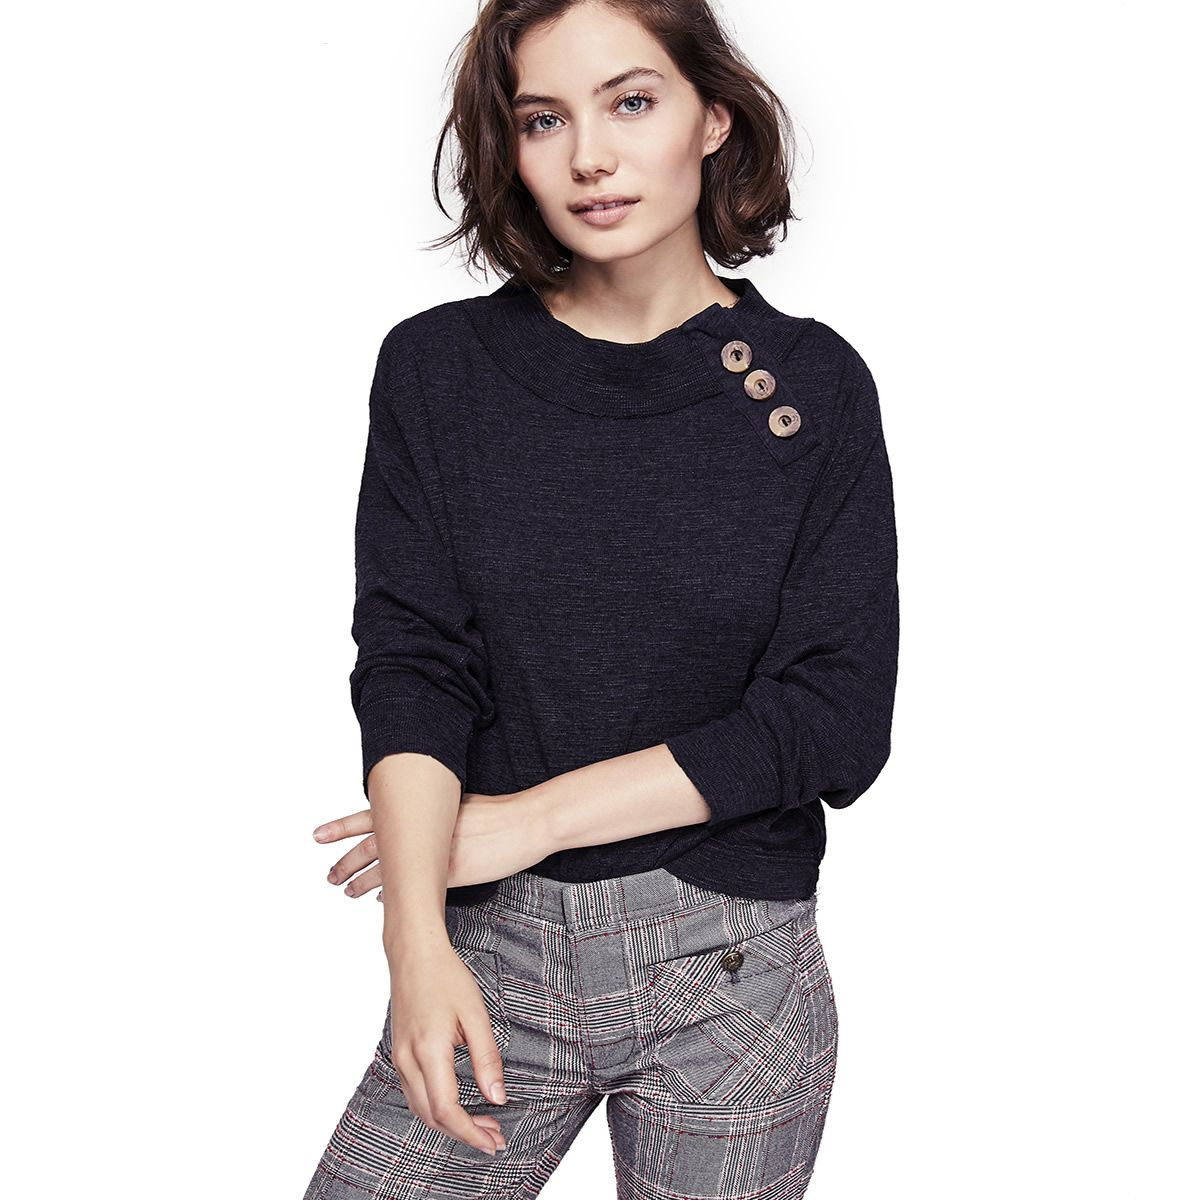 b537d32d3a86 Free People Womens Tops - Macy's